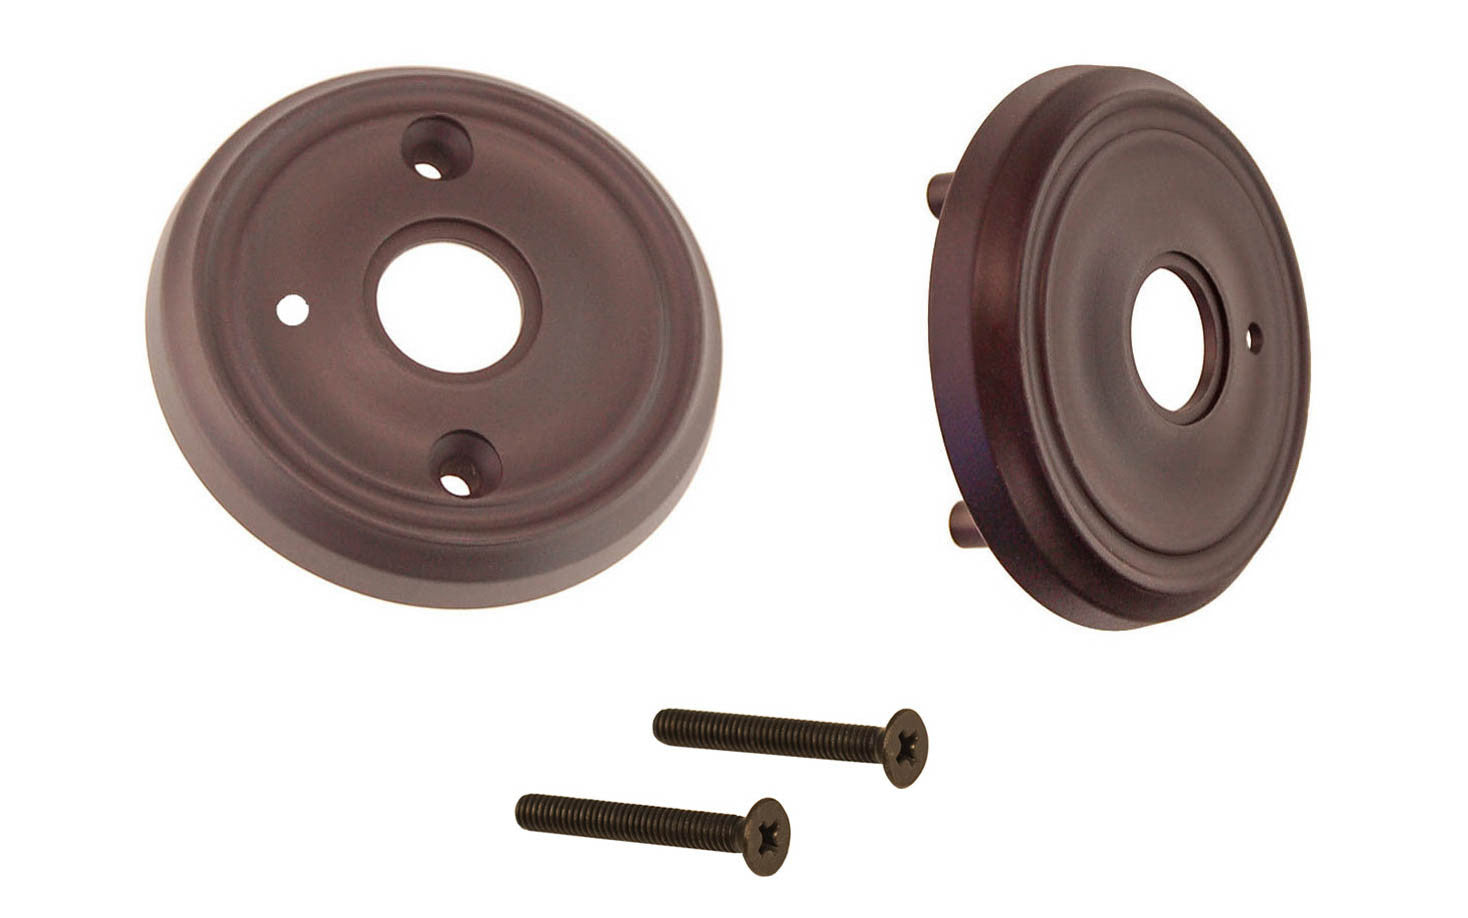 Classic Solid Brass Rosette Set ~ Privacy (Locking) ~ Oil Rubbed Bronze Finish